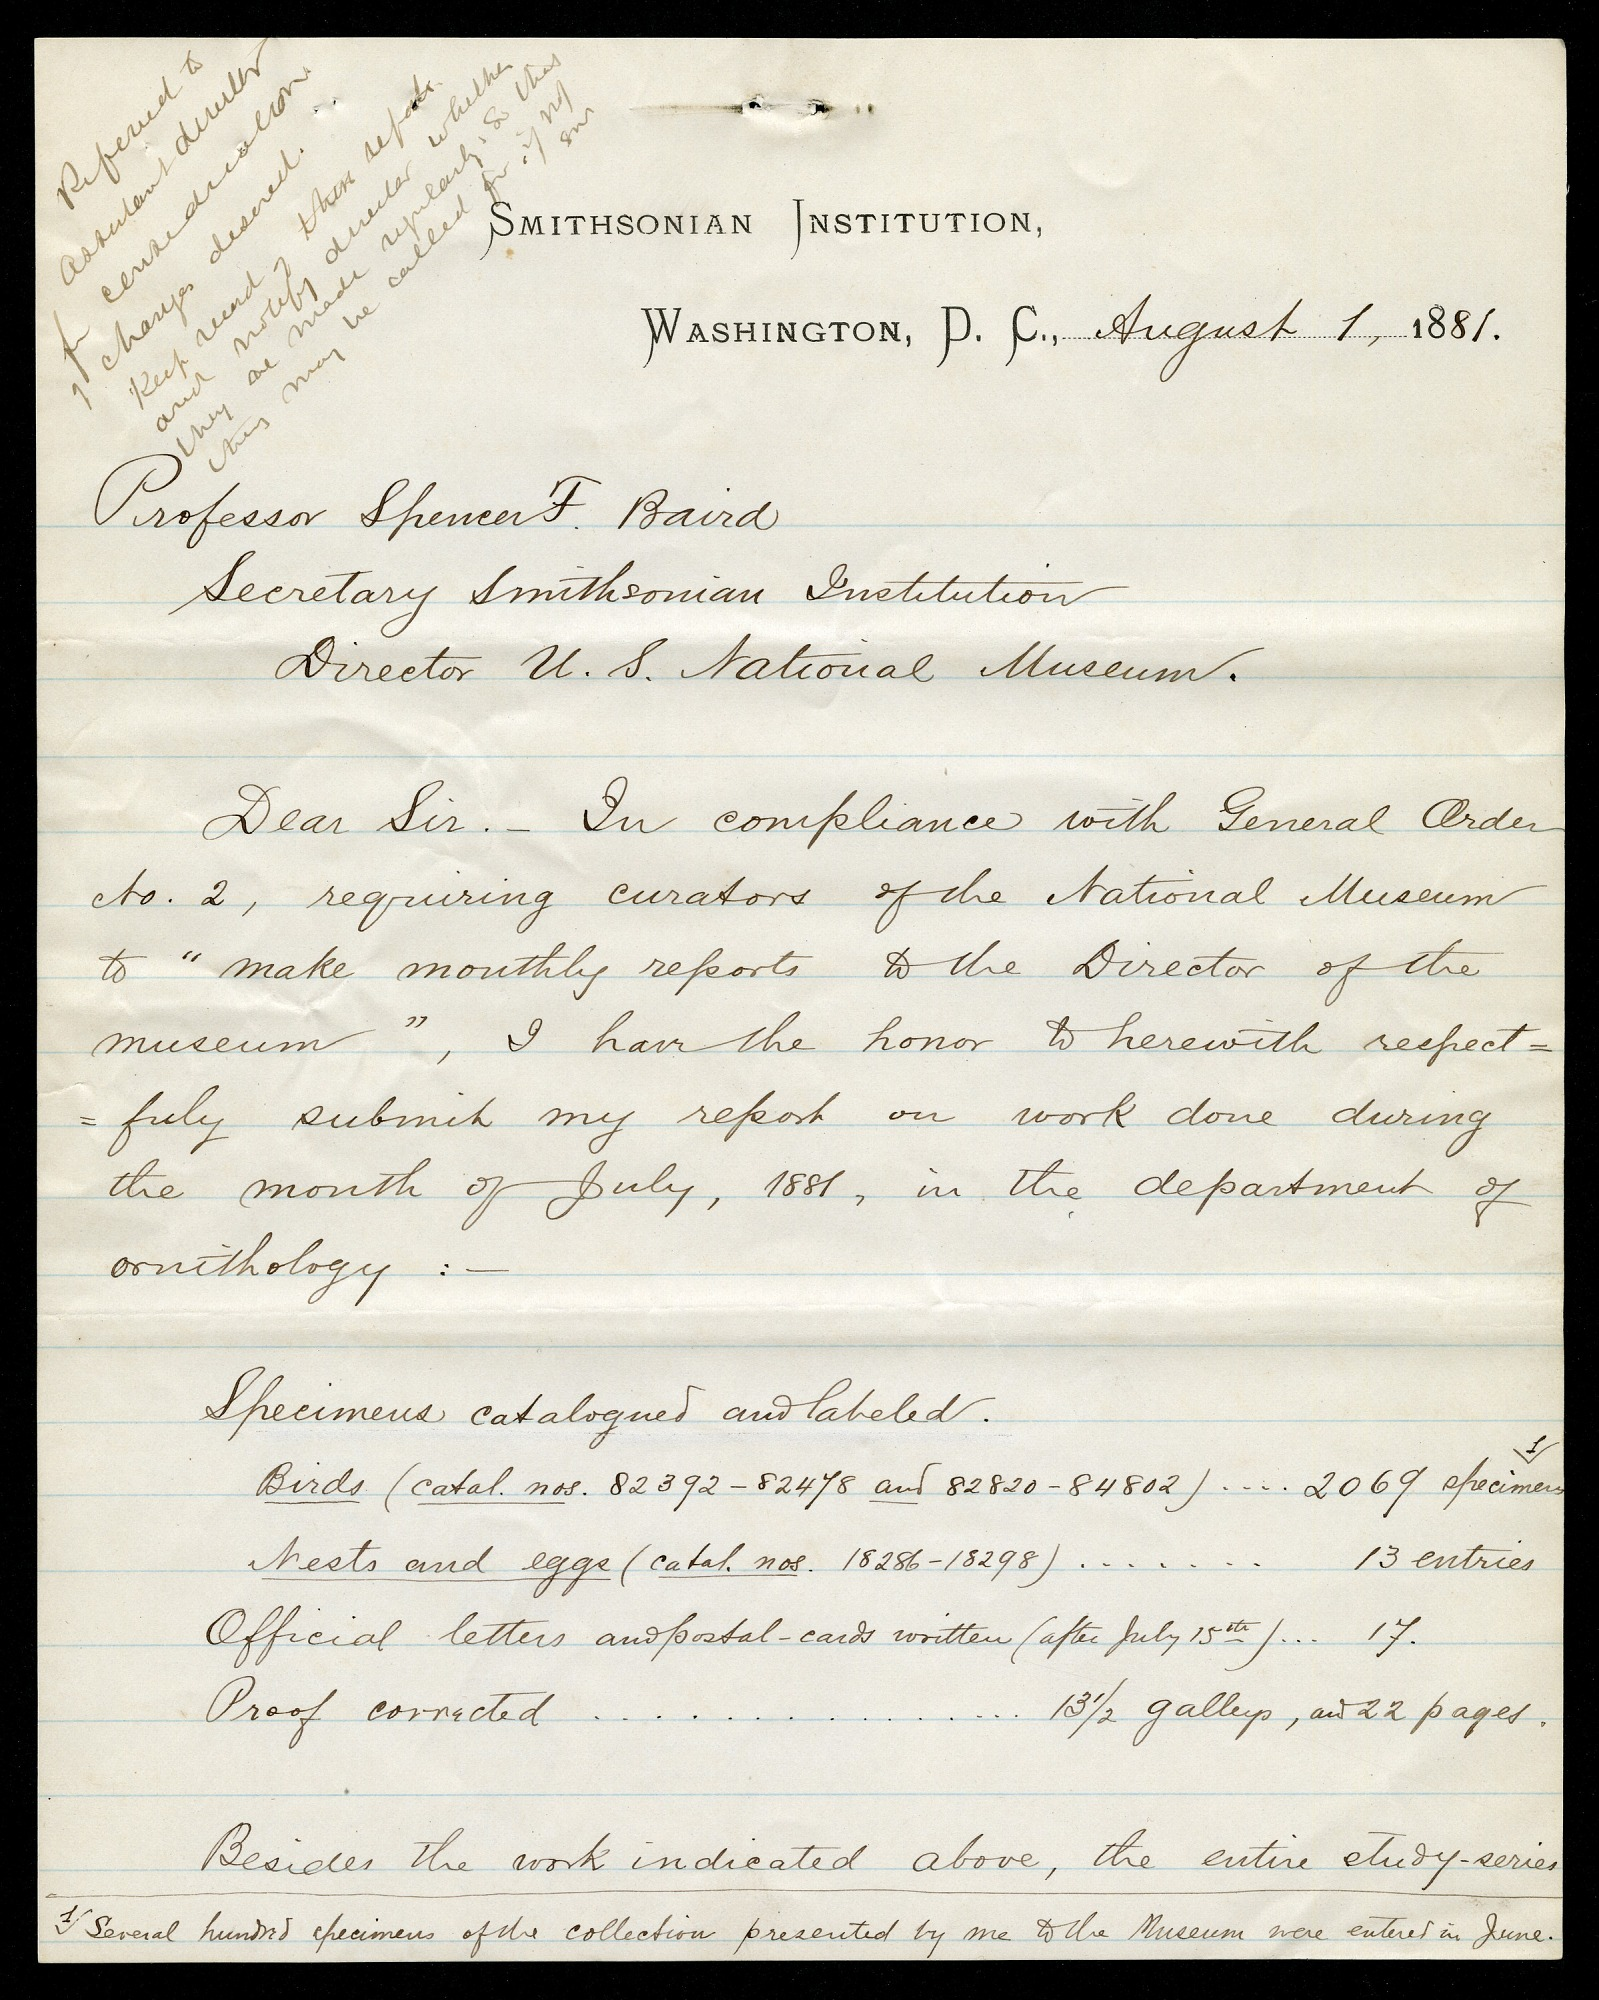 Department of Birds: Monthly Reports July - November 1881